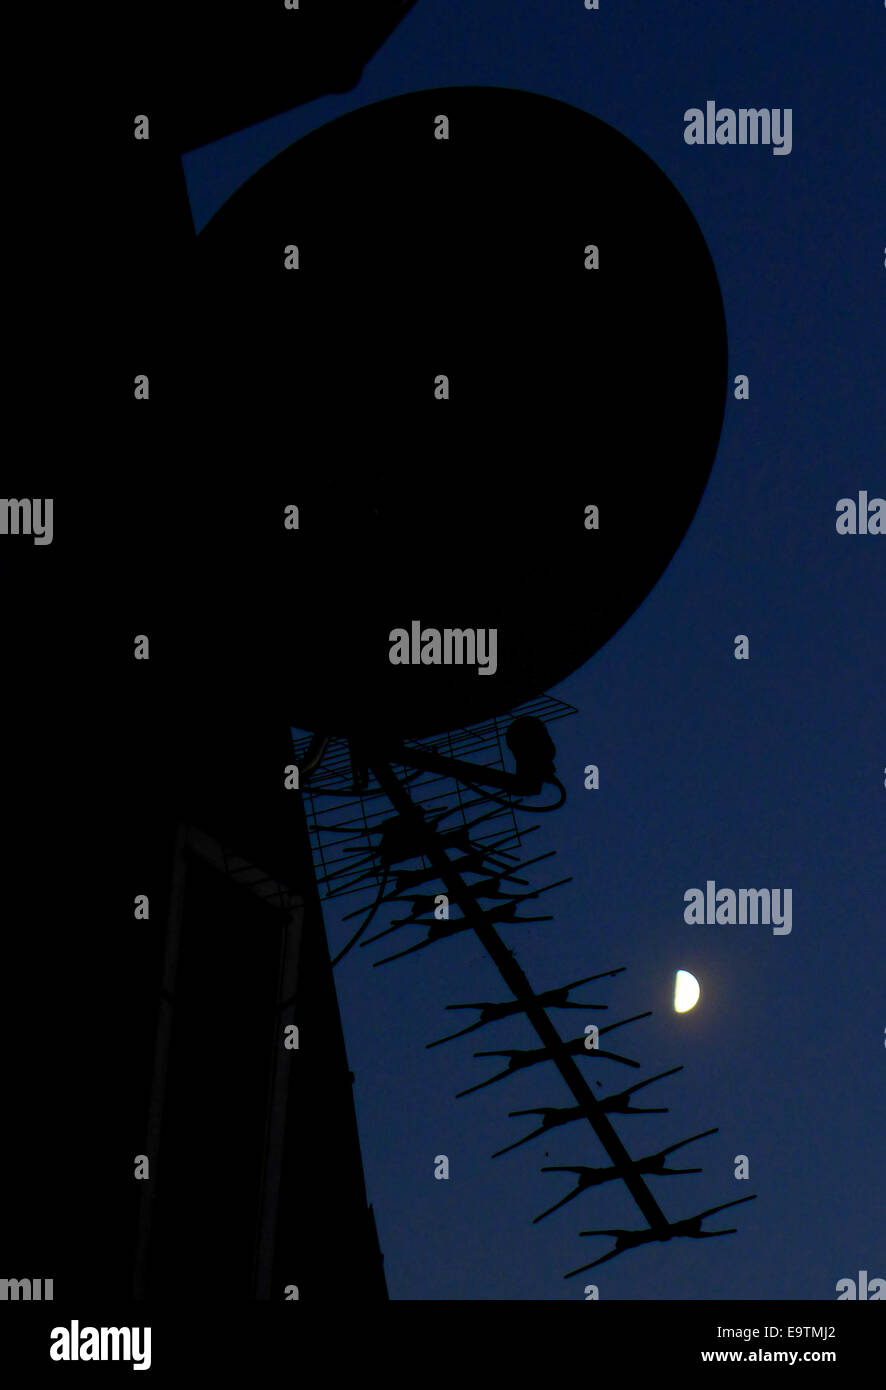 Aerial and satelitte dish silhouetted against a moonlit sky. - Stock Image